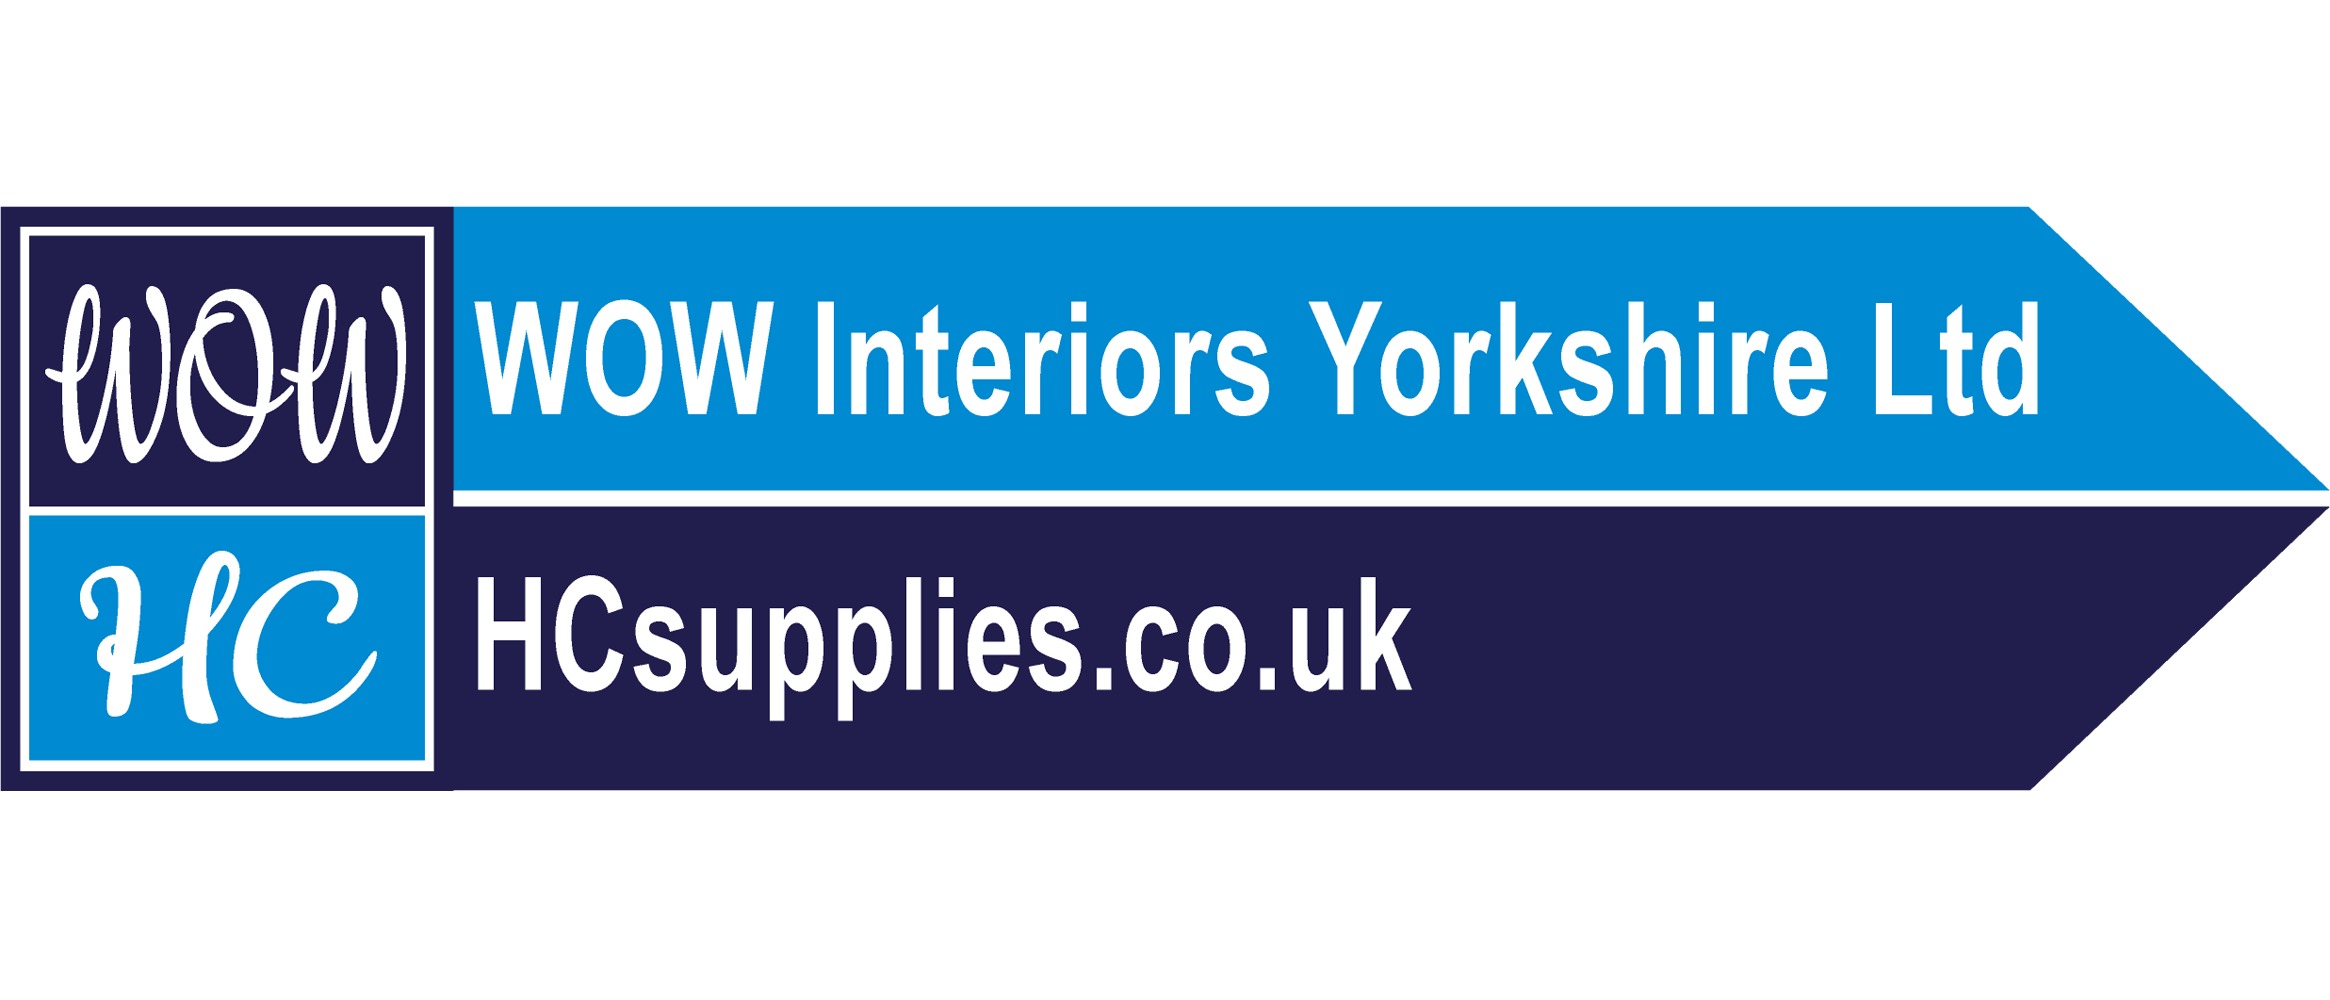 Hcsupplies.co.uk